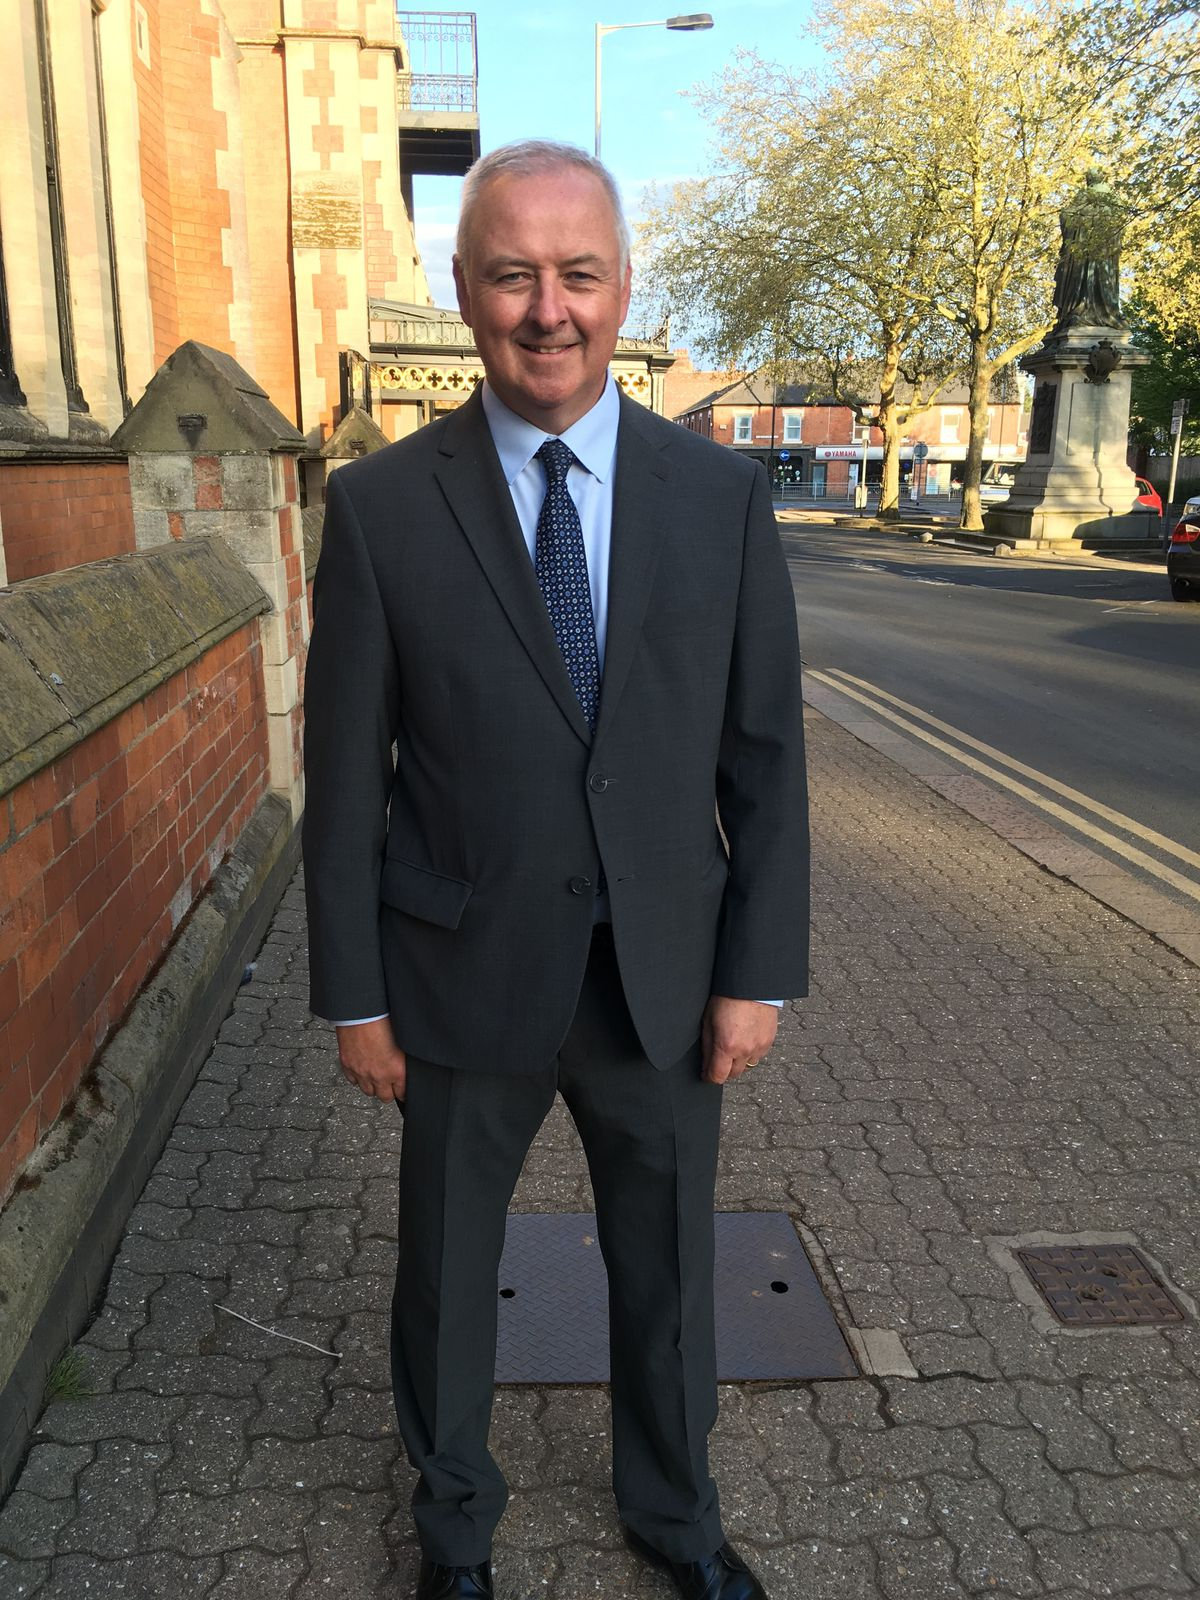 Ben Adams, Staffordshire's Police, Fire and Crime Commissioner